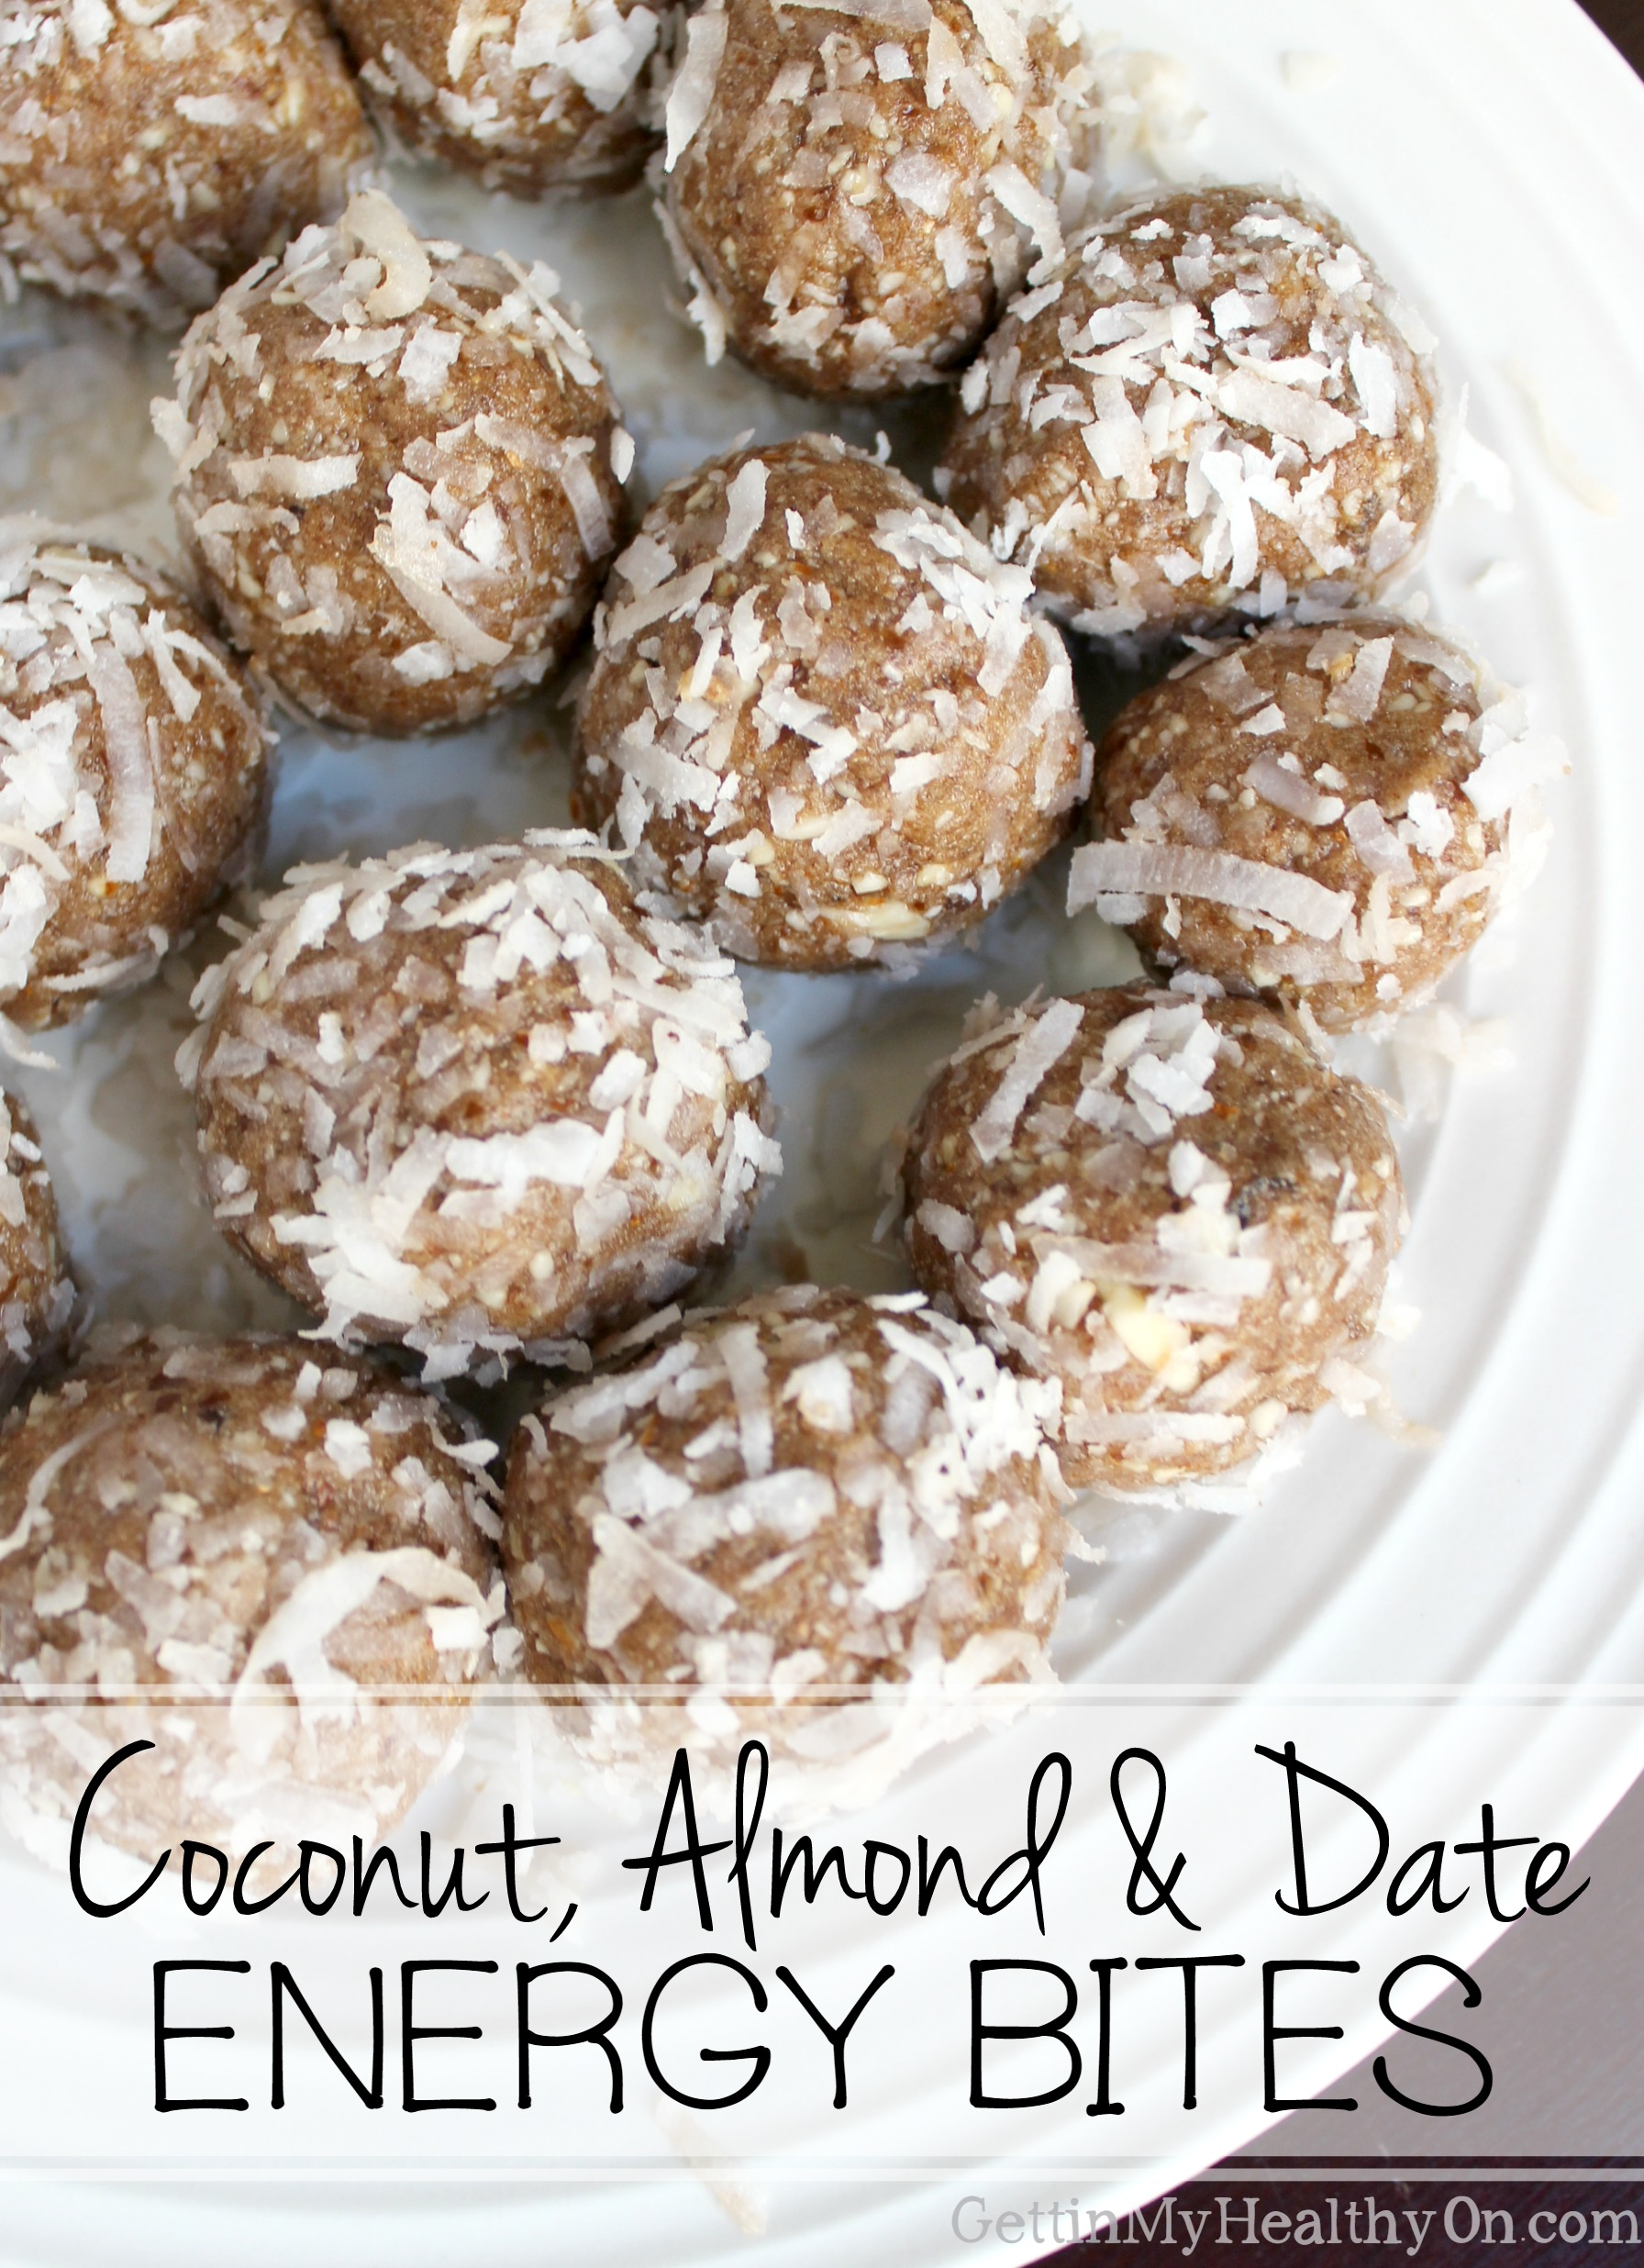 Coconut, Almond & Date Energy Bites